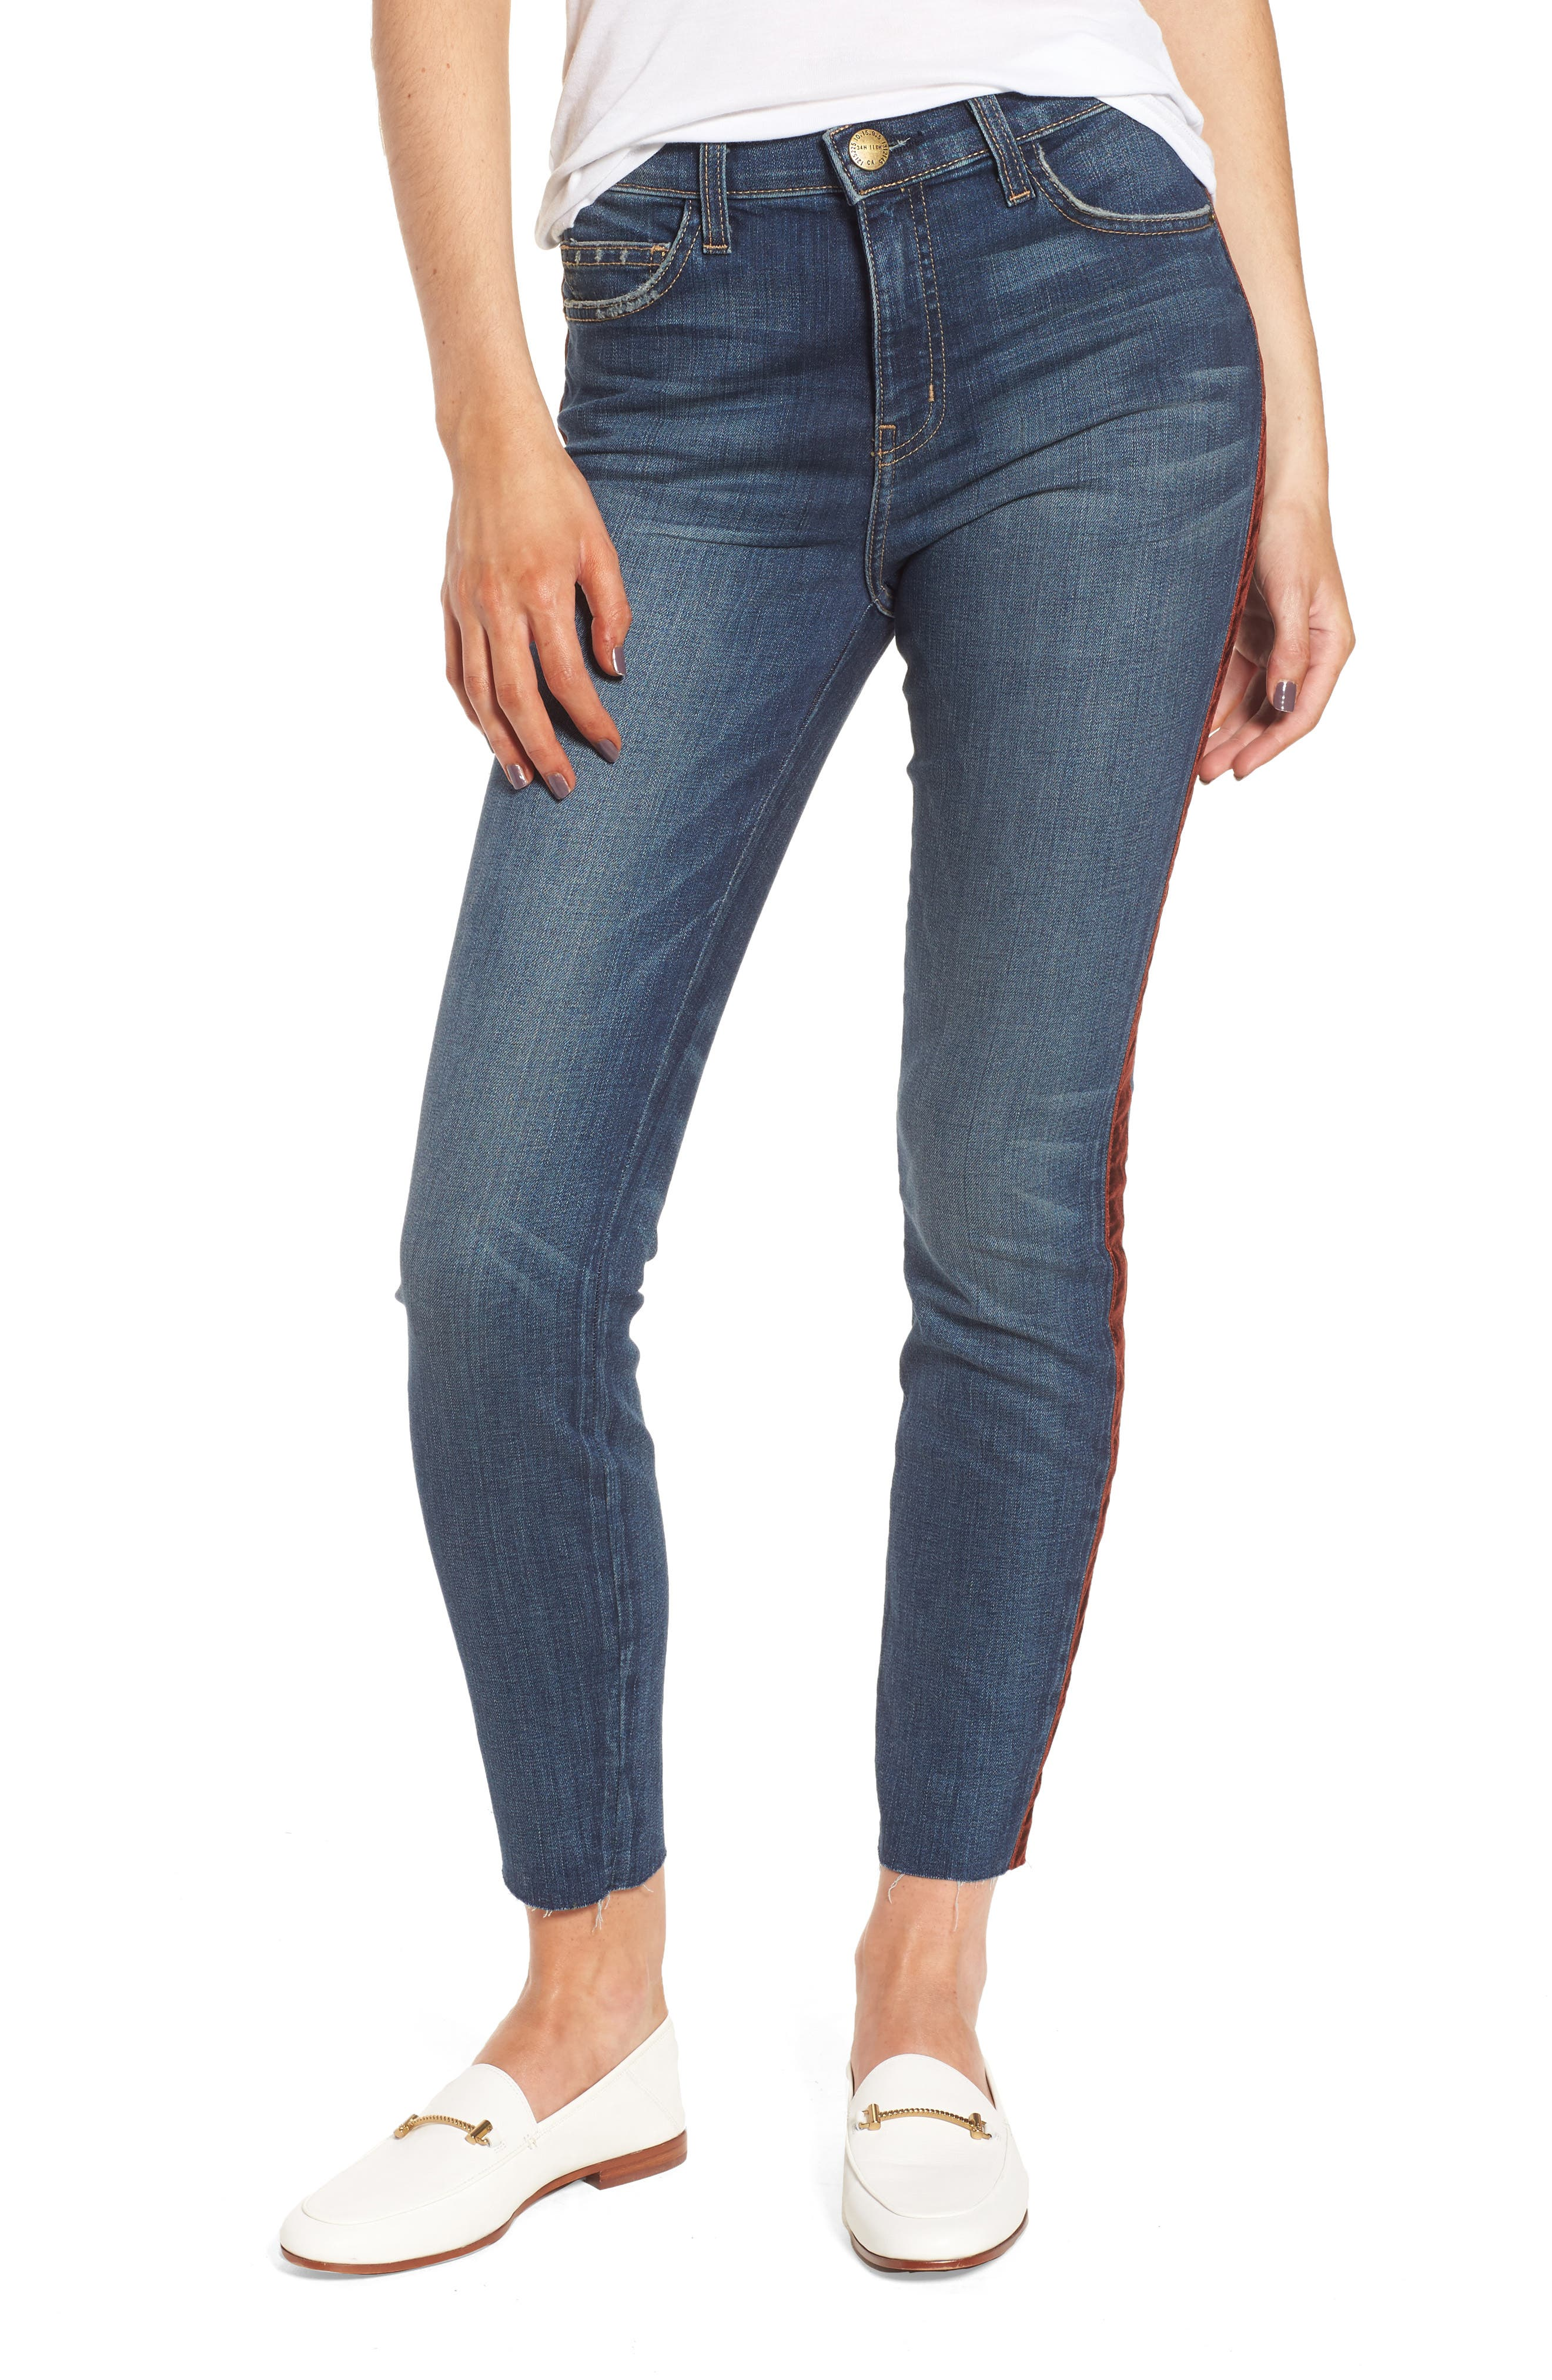 Alternate Image 1 Selected - Current/Elliott The High Waist Stiletto Ankle Skinny Jeans (Townie)